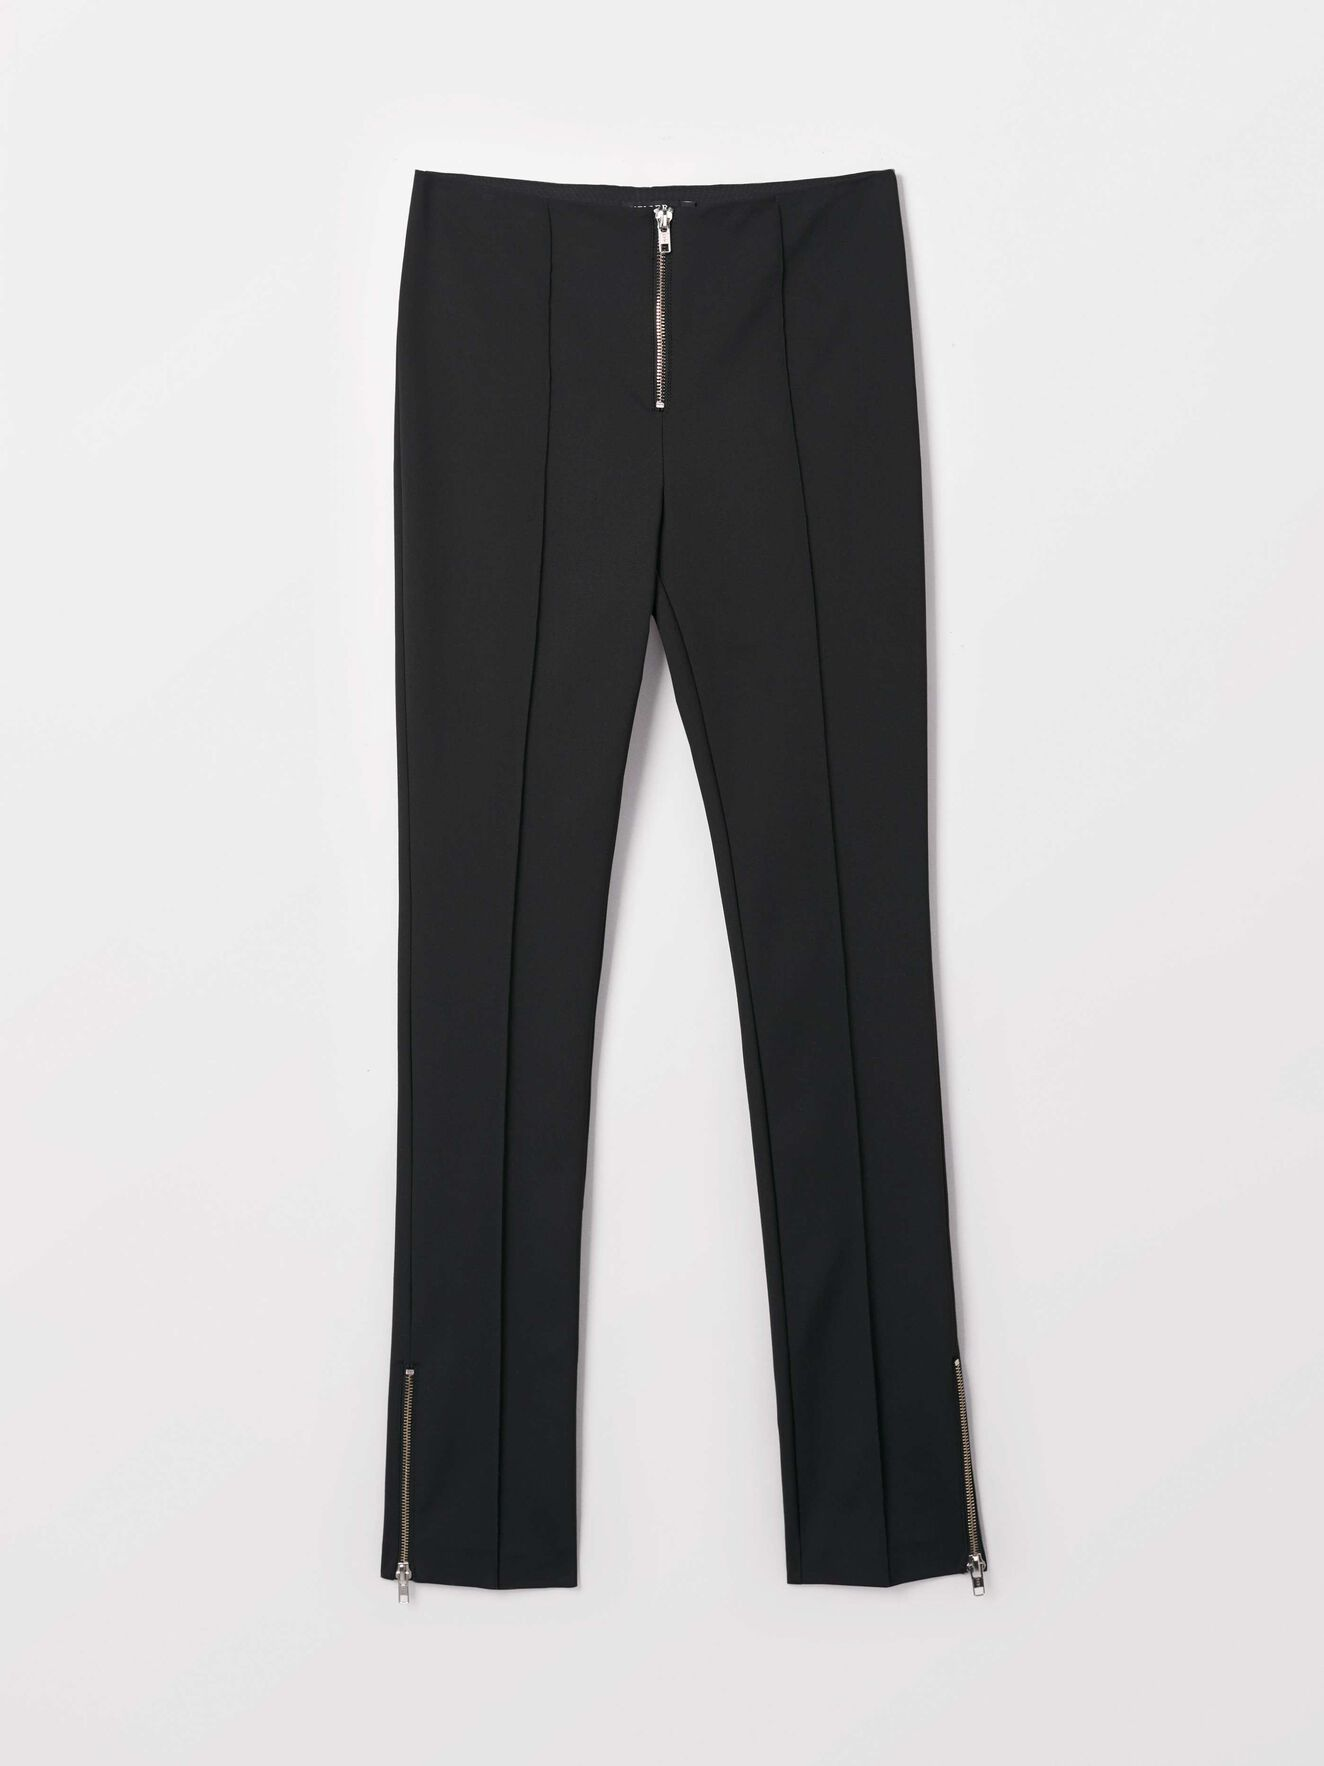 Loane Trousers in Midnight Black from Tiger of Sweden